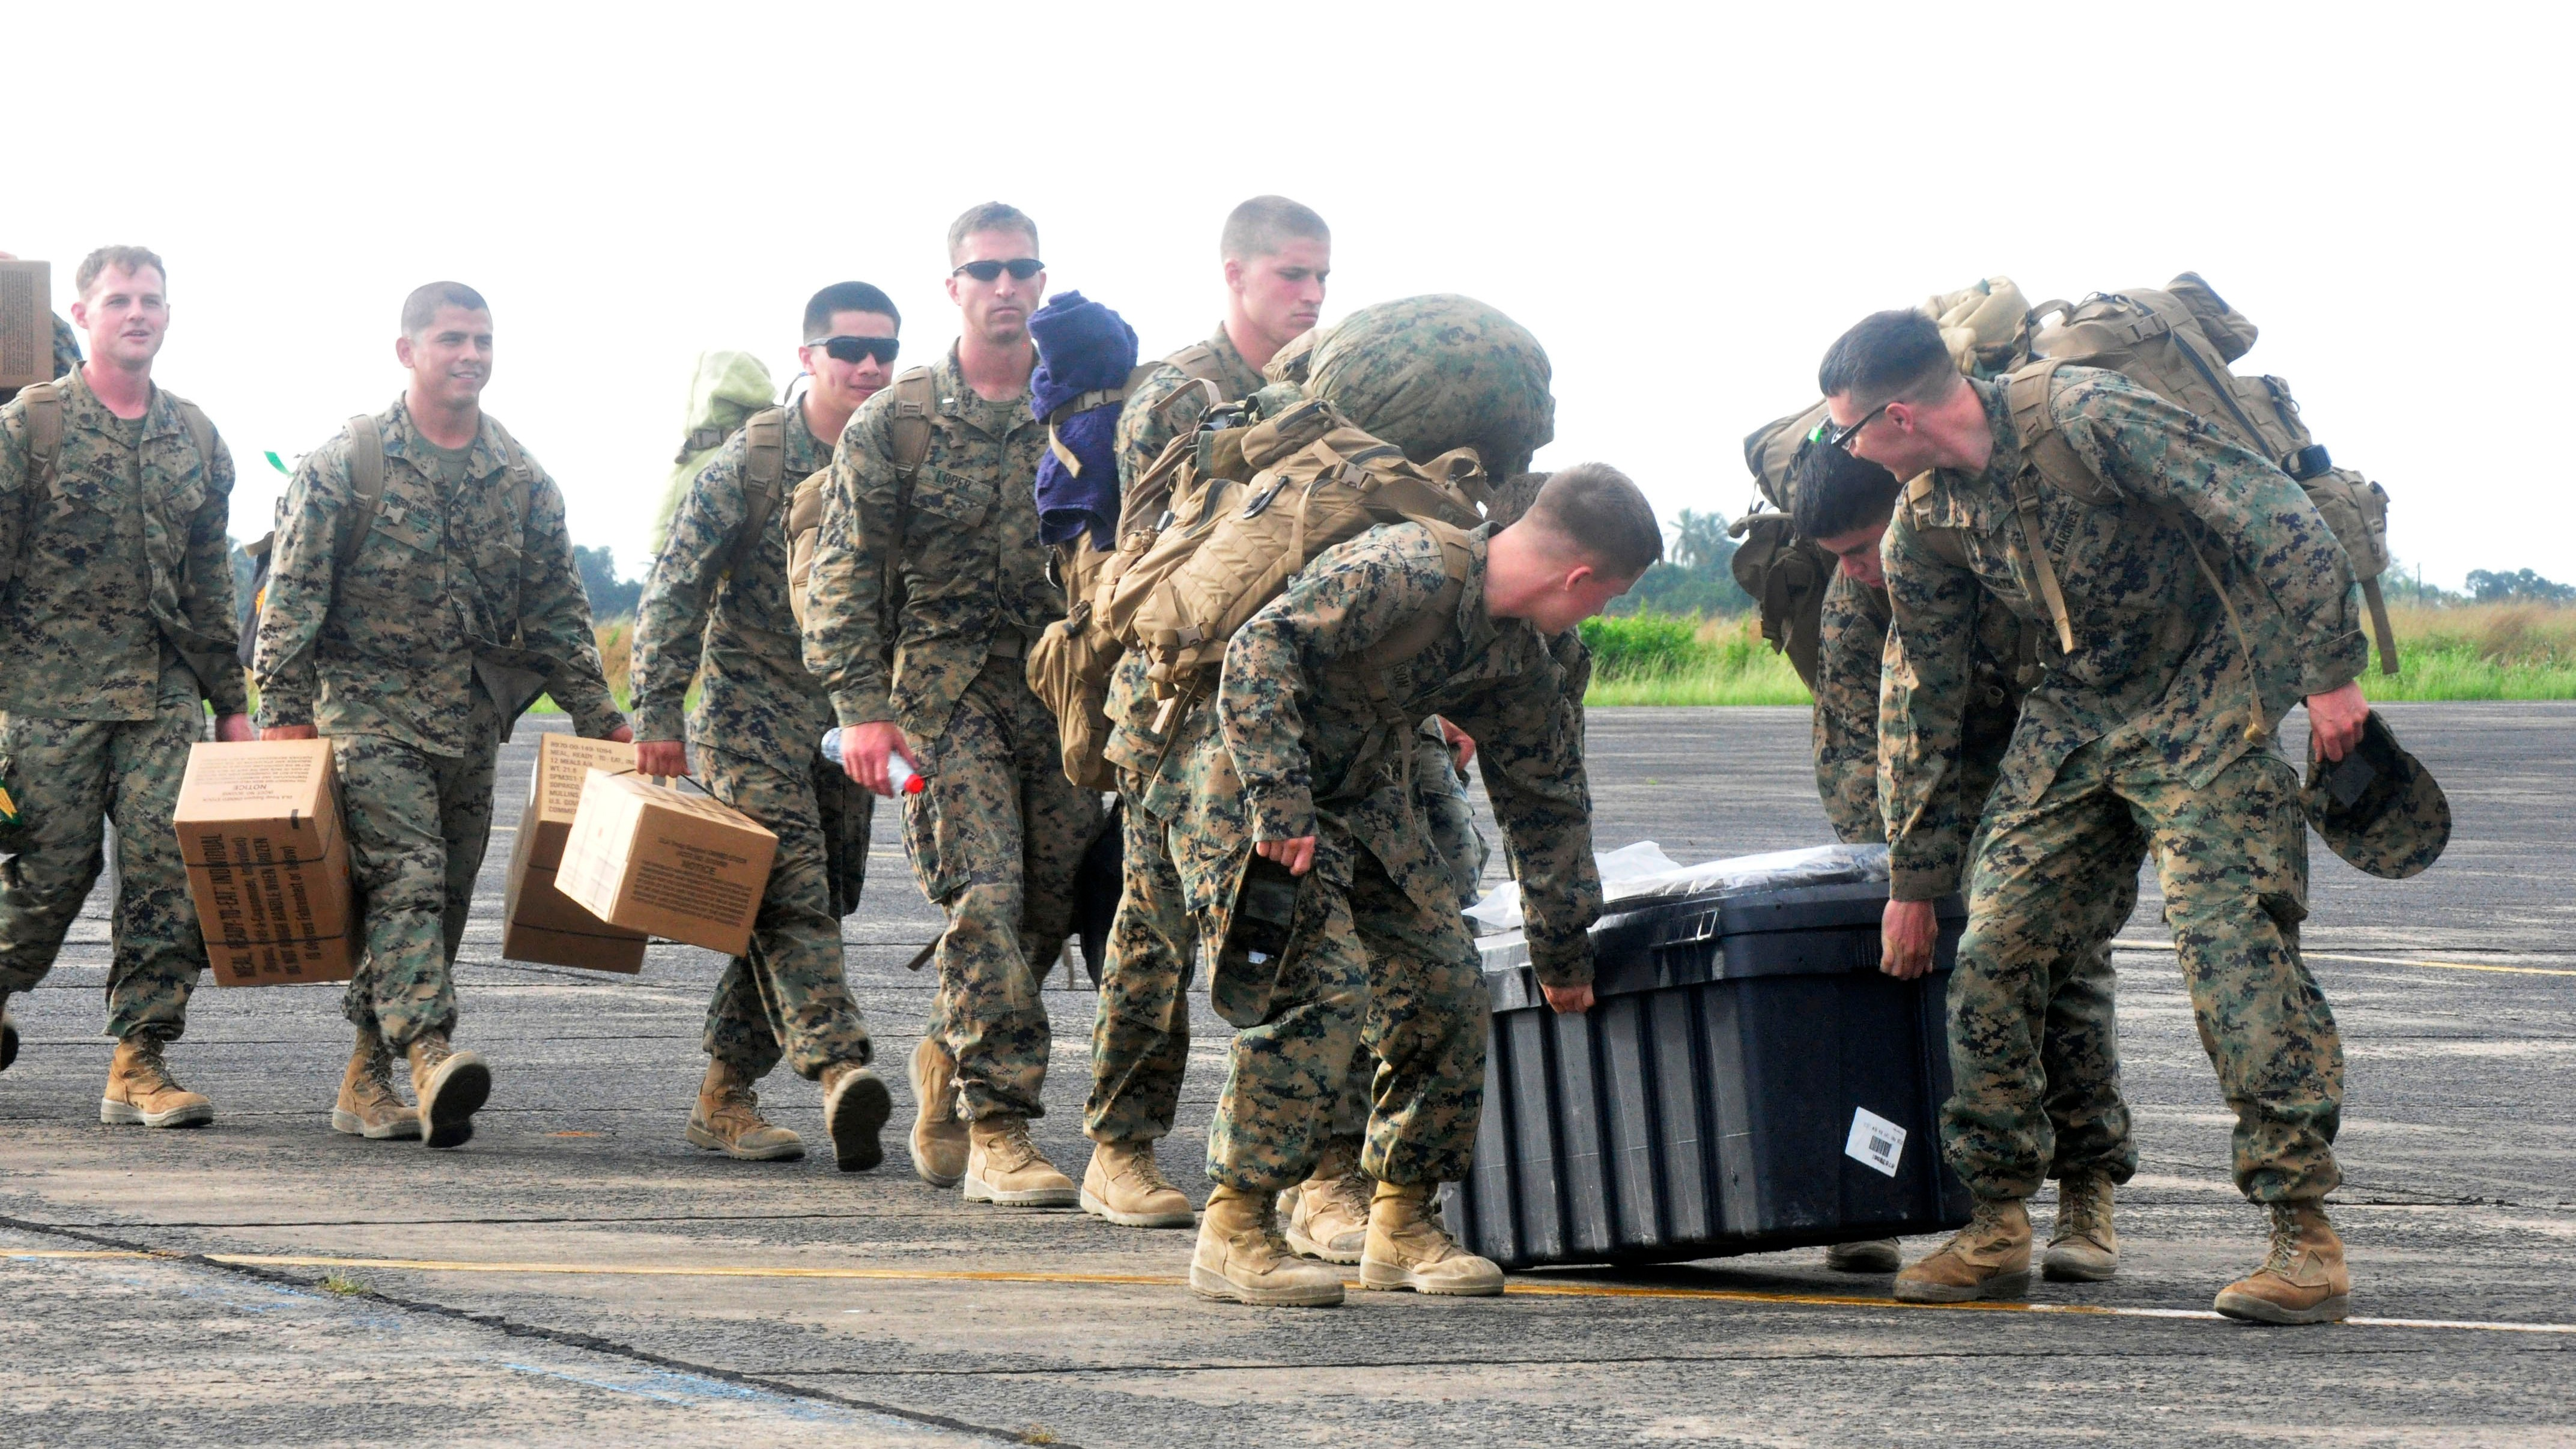 US Military to Quarantine Army Personnel Returning From Ebola Response Mission